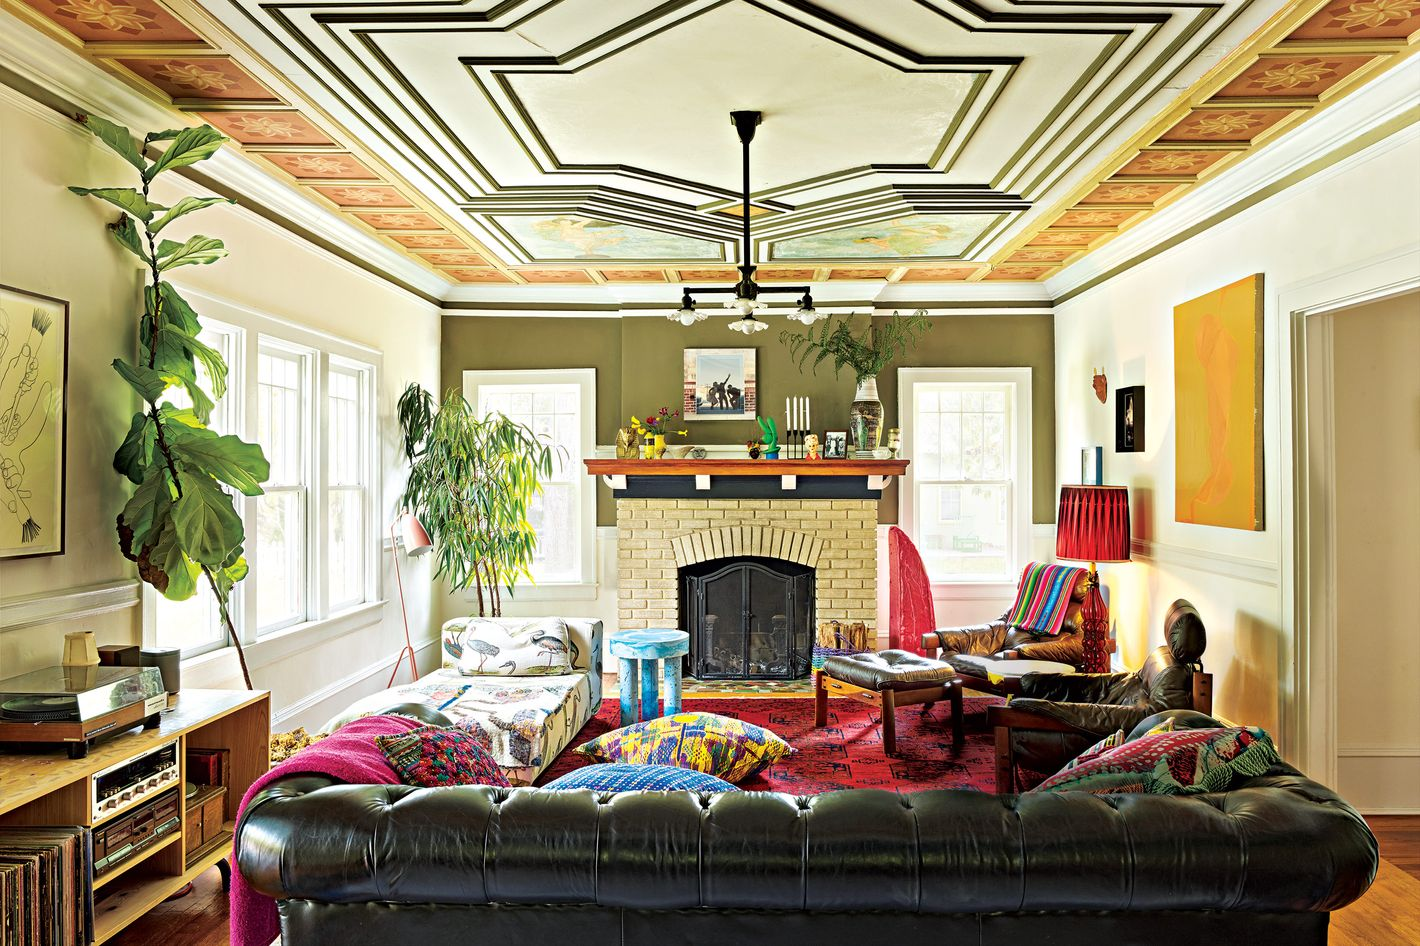 Home Design And Real Estate New York Magazine Apartment Tours - Real home design